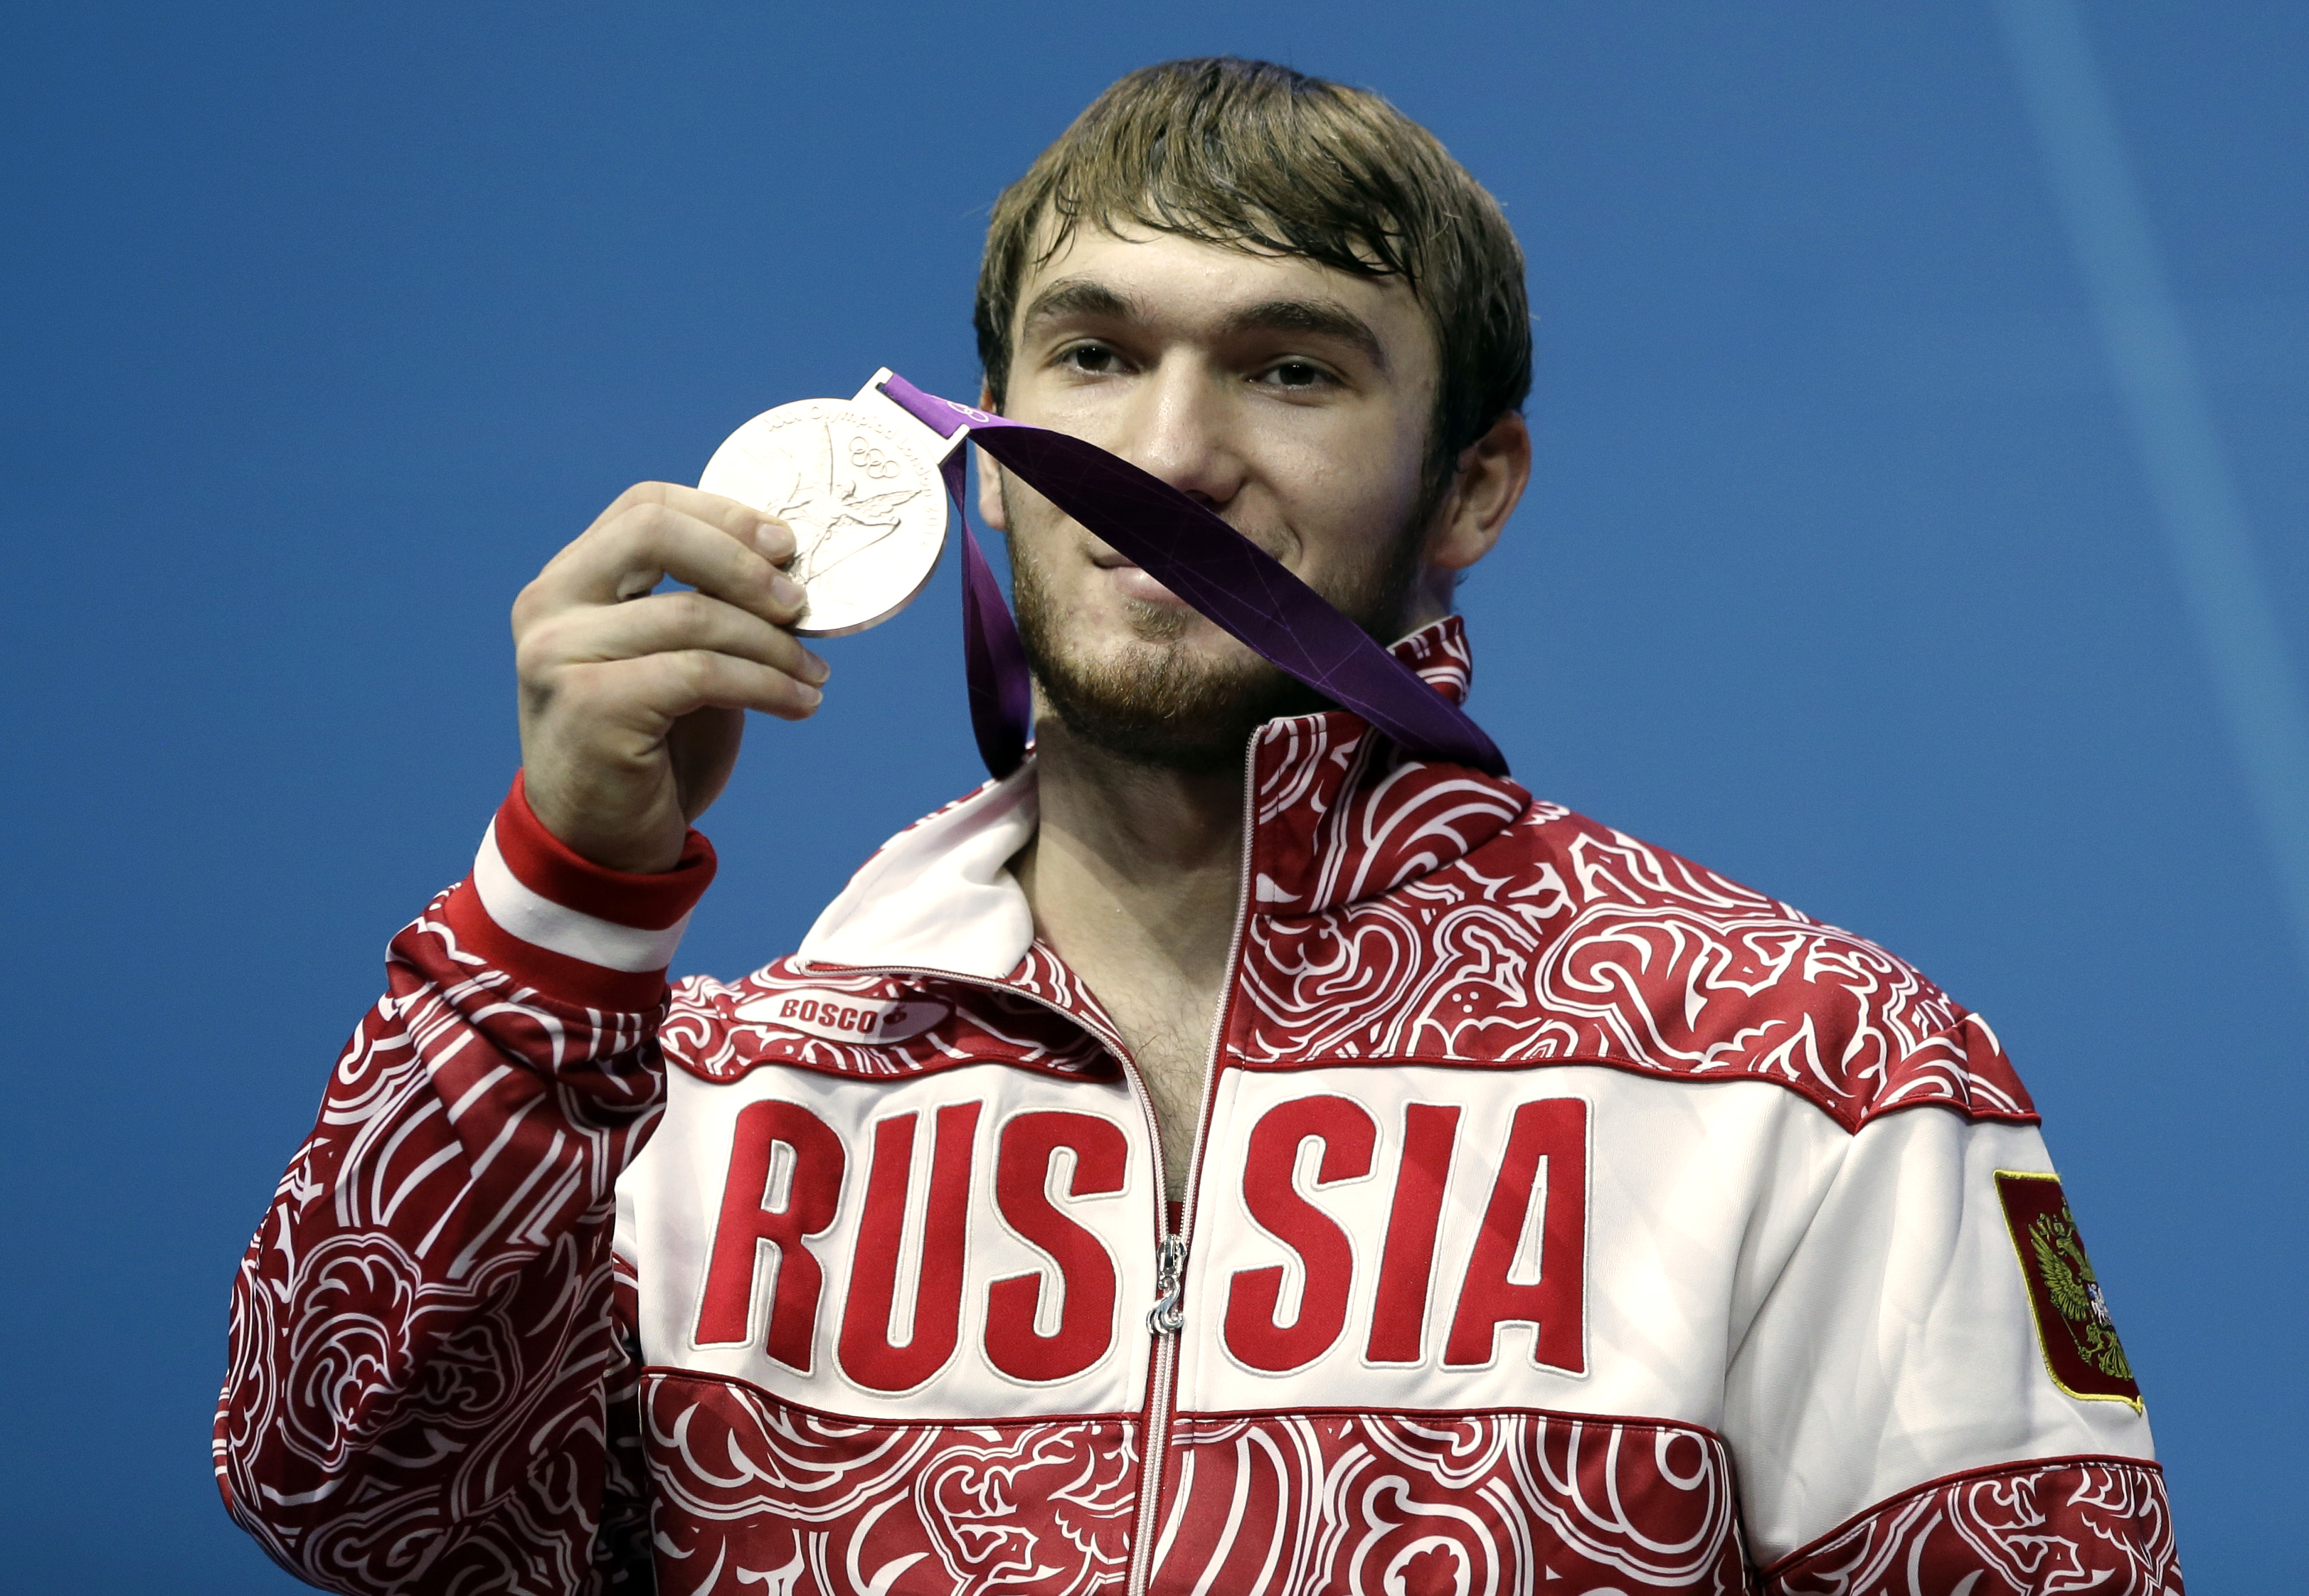 FILE - In this Friday, Aug. 3, 2012 file photo, silver medalist Apti Aukhadov of Russia shows off his medal during a ceremony after the men's 85-kg, group A, weightlifting competition at the 2012 Summer Olympics in London. Russian weightlifter Apti Aukhad